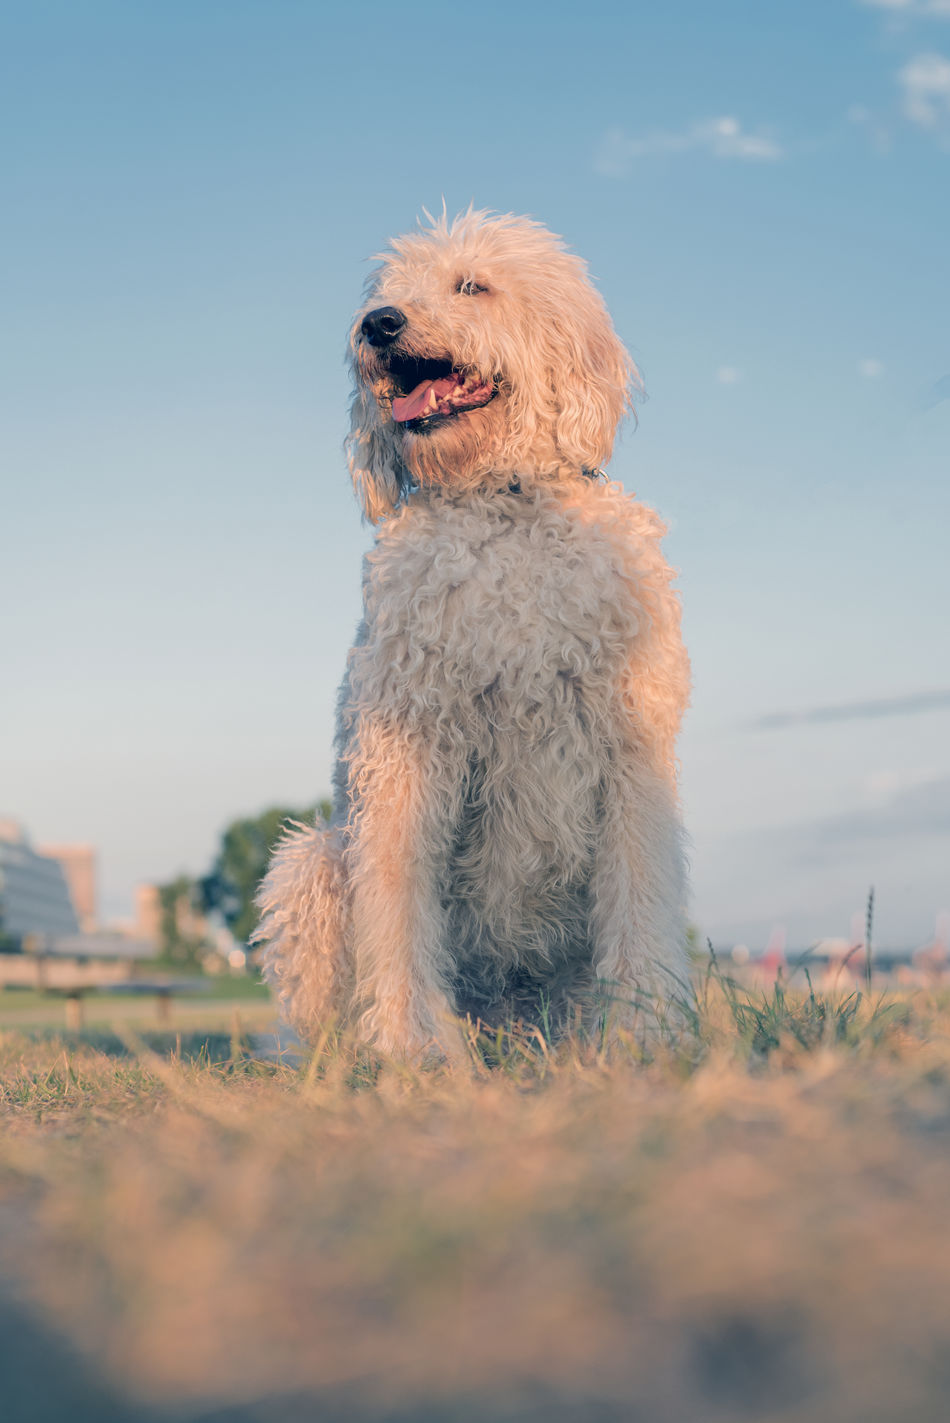 Labradoodle dogs outside at the park Animal Themes Companions Cute Day Daycare Dog Domestic Animals Golden Doodle Labradoodle Mammal Nature No People Obedience One Animal Outdoors Outside Pets Sky Training Walking